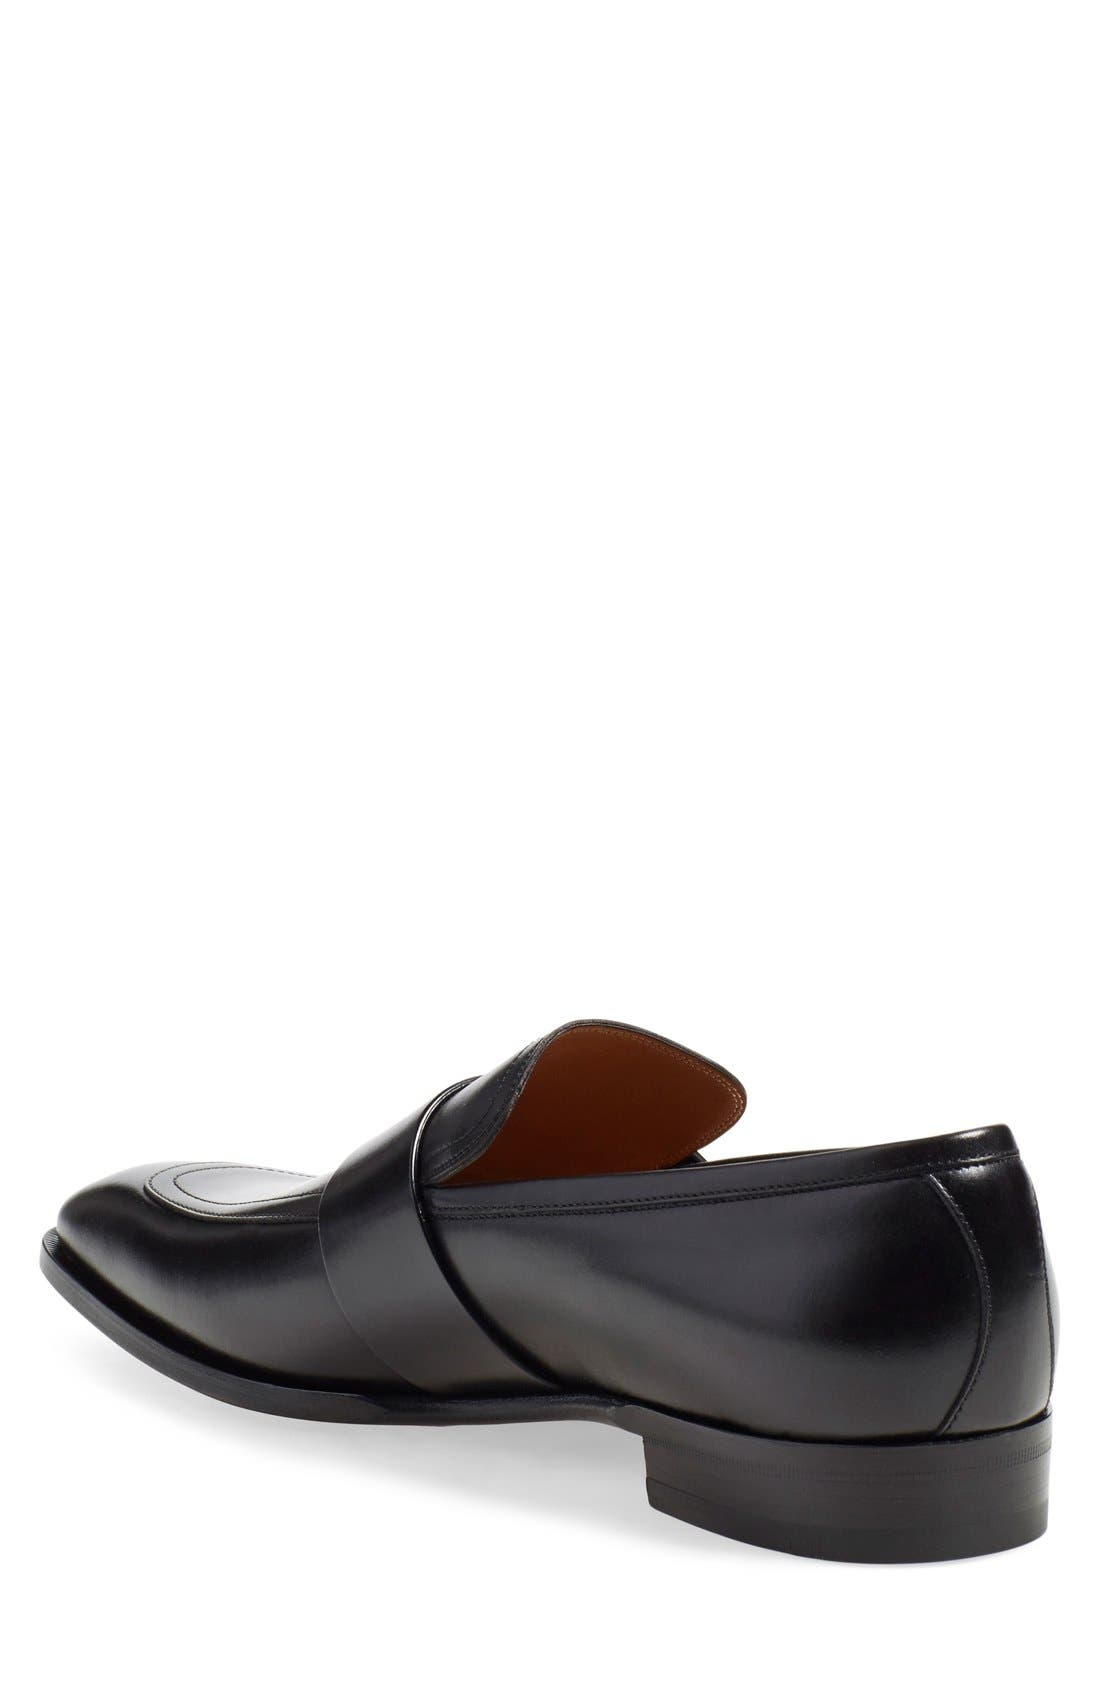 'Broadwick' Loafer,                             Alternate thumbnail 6, color,                             001